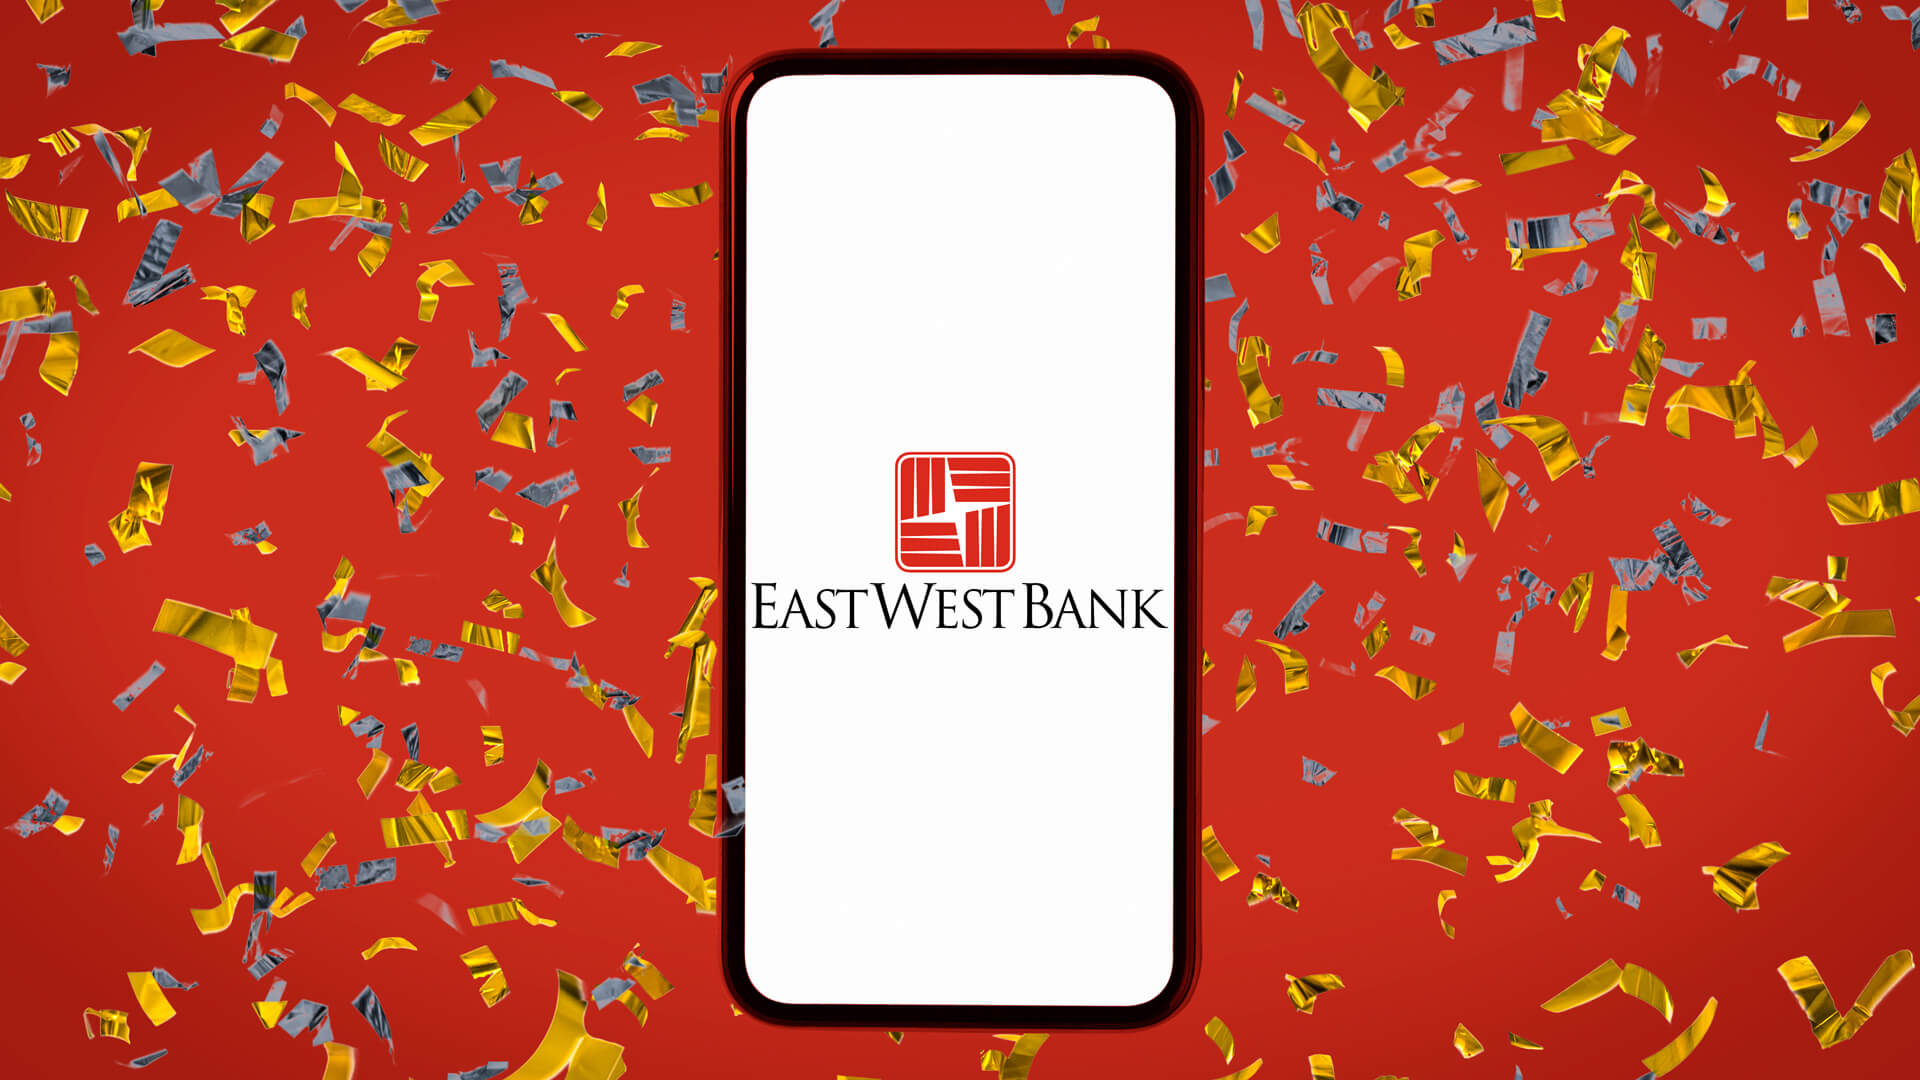 East West Bank promotions